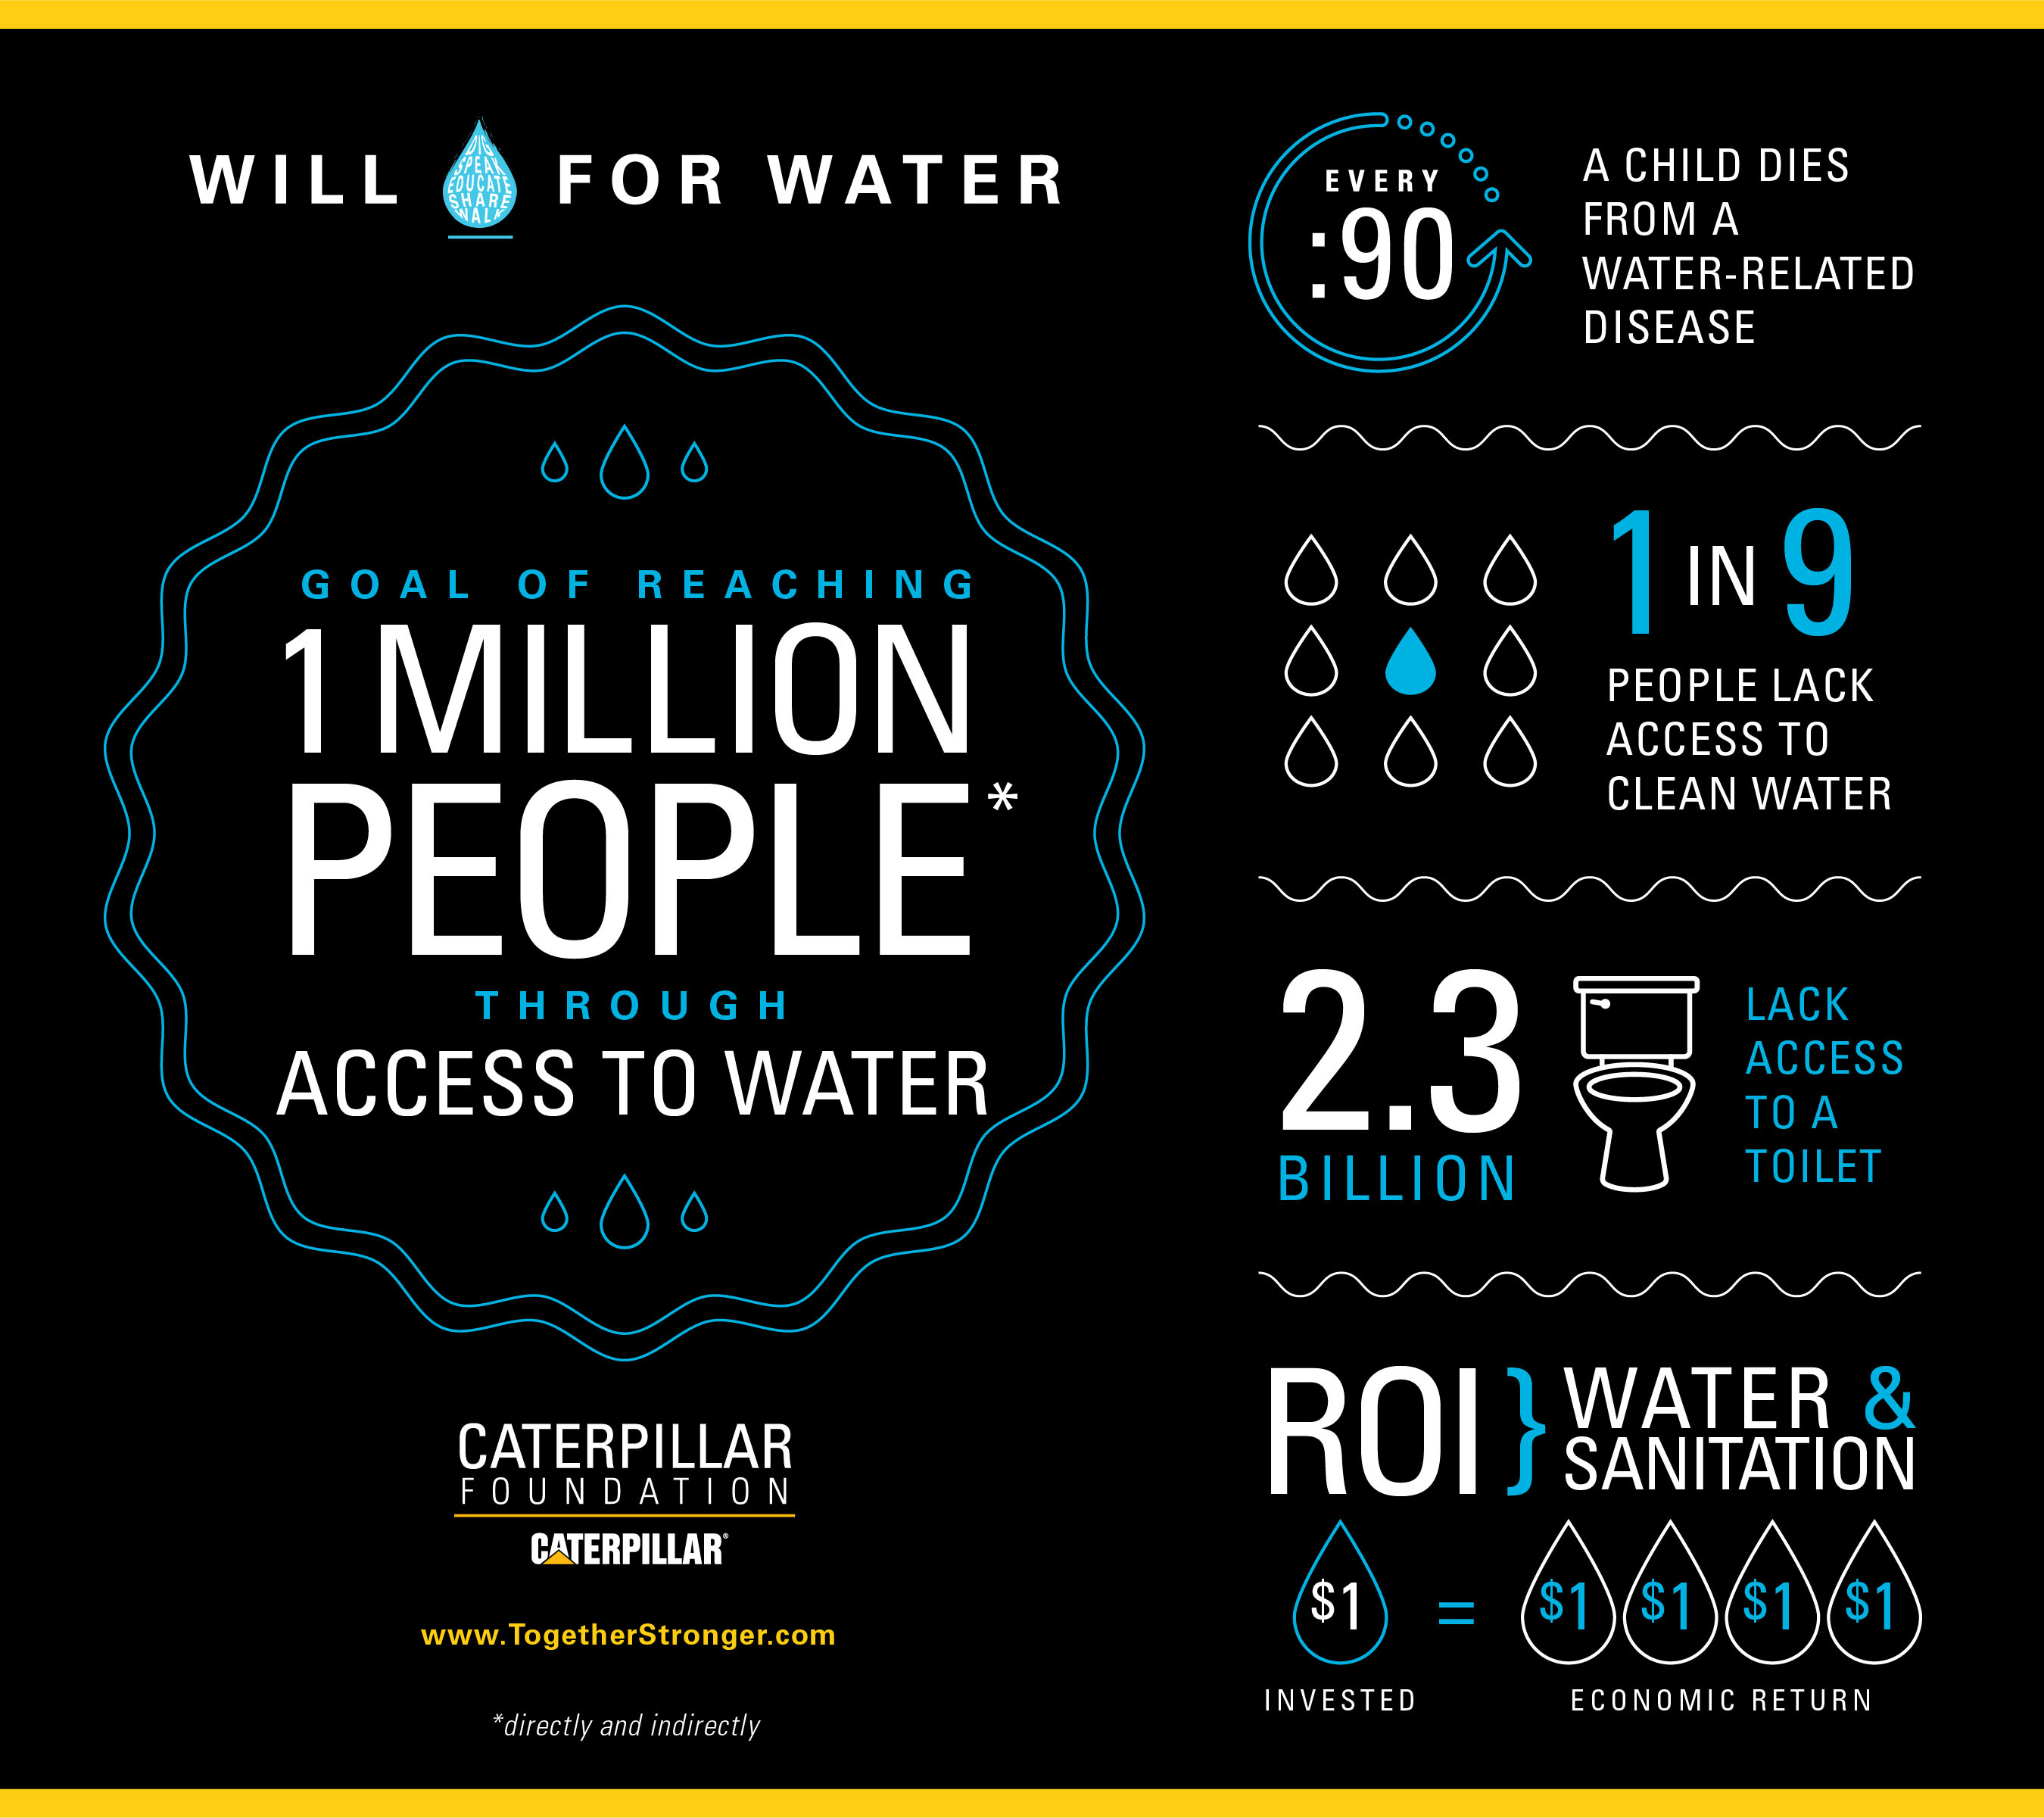 The Caterpillar Foundation, together with its global partners, launches the Value of Water campaign to raise awareness of the value of water and the impact of the global water crisis on community health, education and economics.